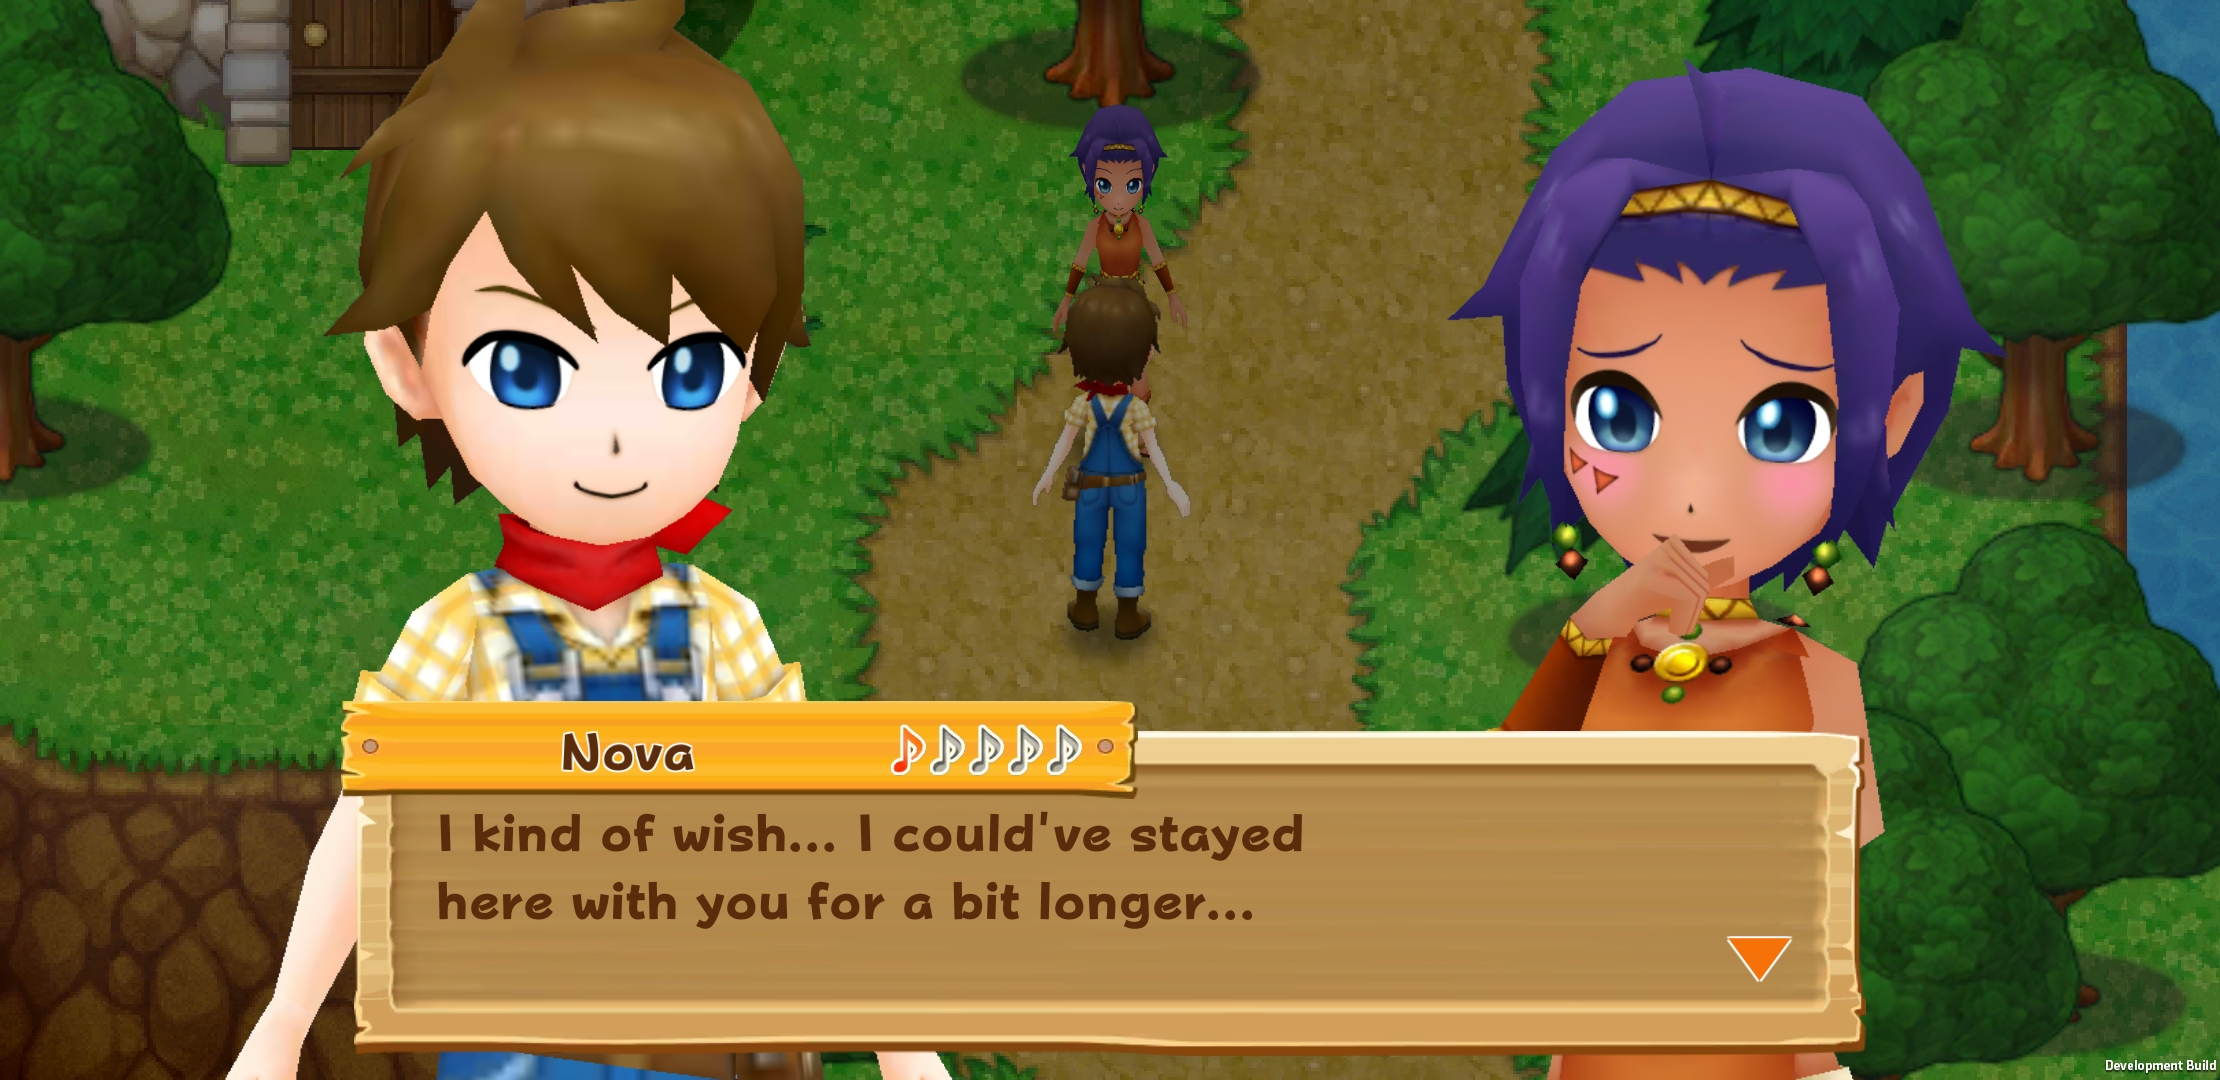 harvest-moon-light-of-hope-for-ios-android-coming-soon6-frikigamers.com.jpg